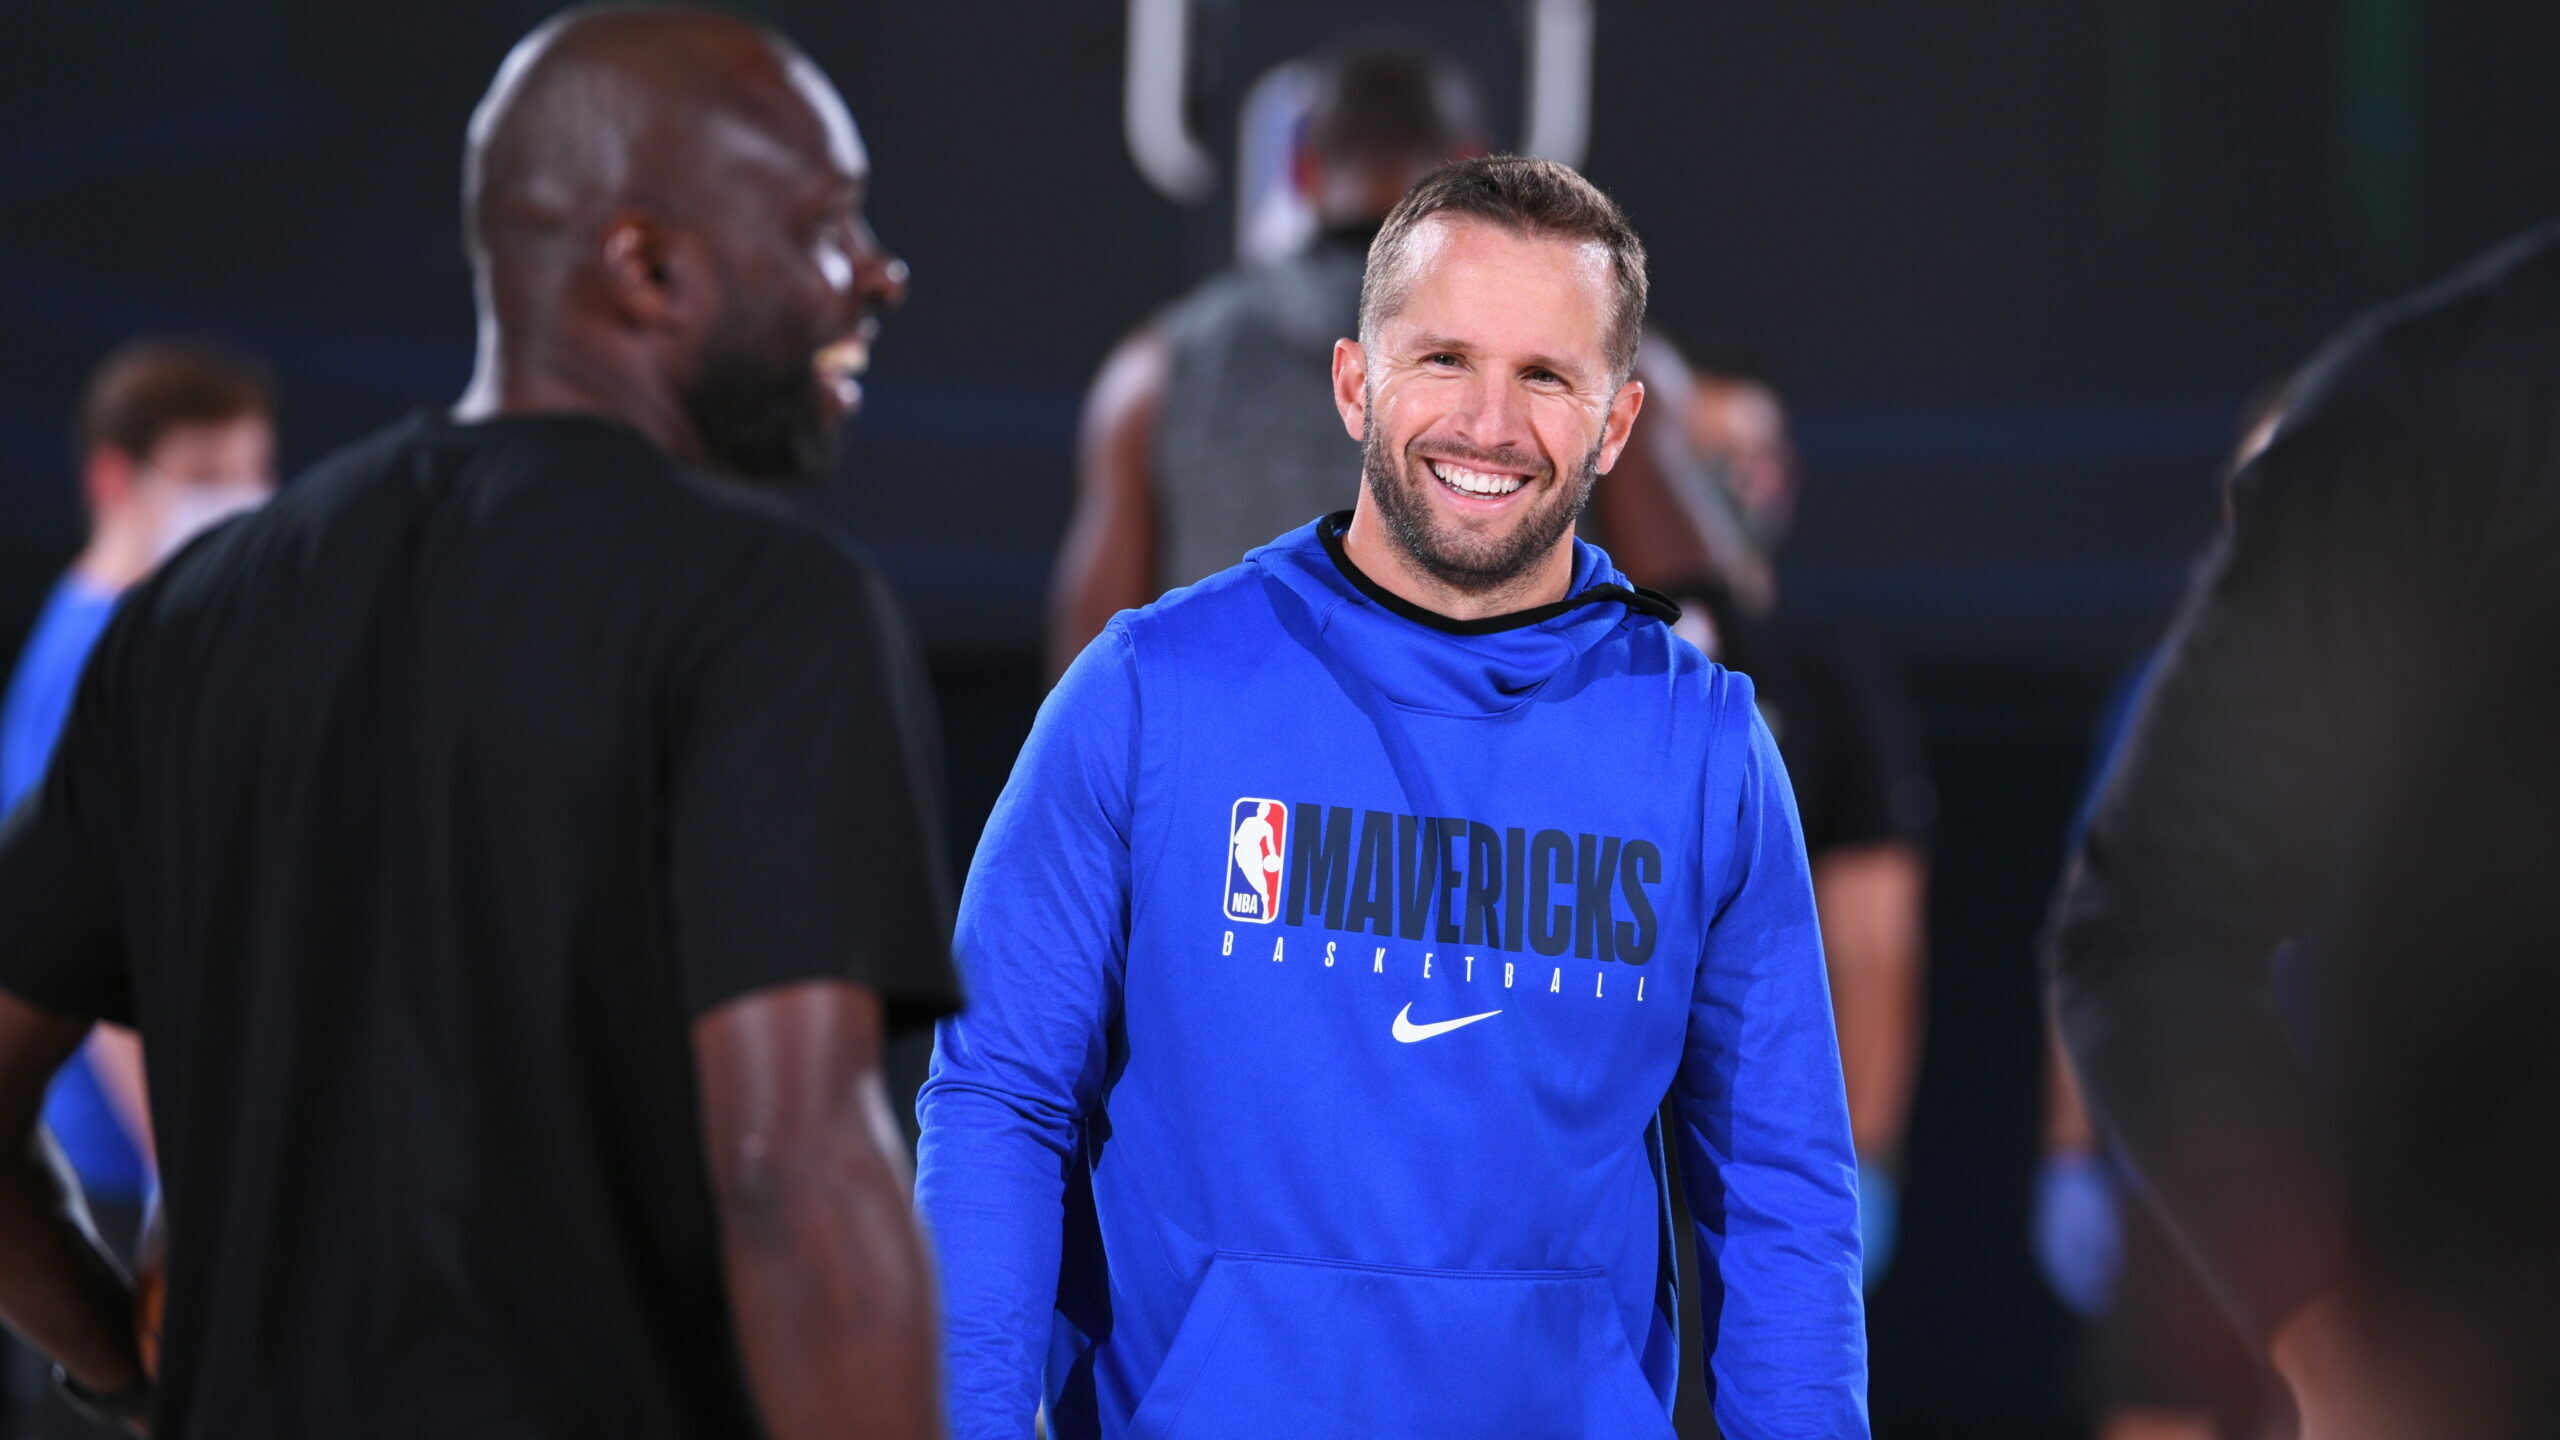 Former Mavericks guard J.J. Barea signs for team in Spain